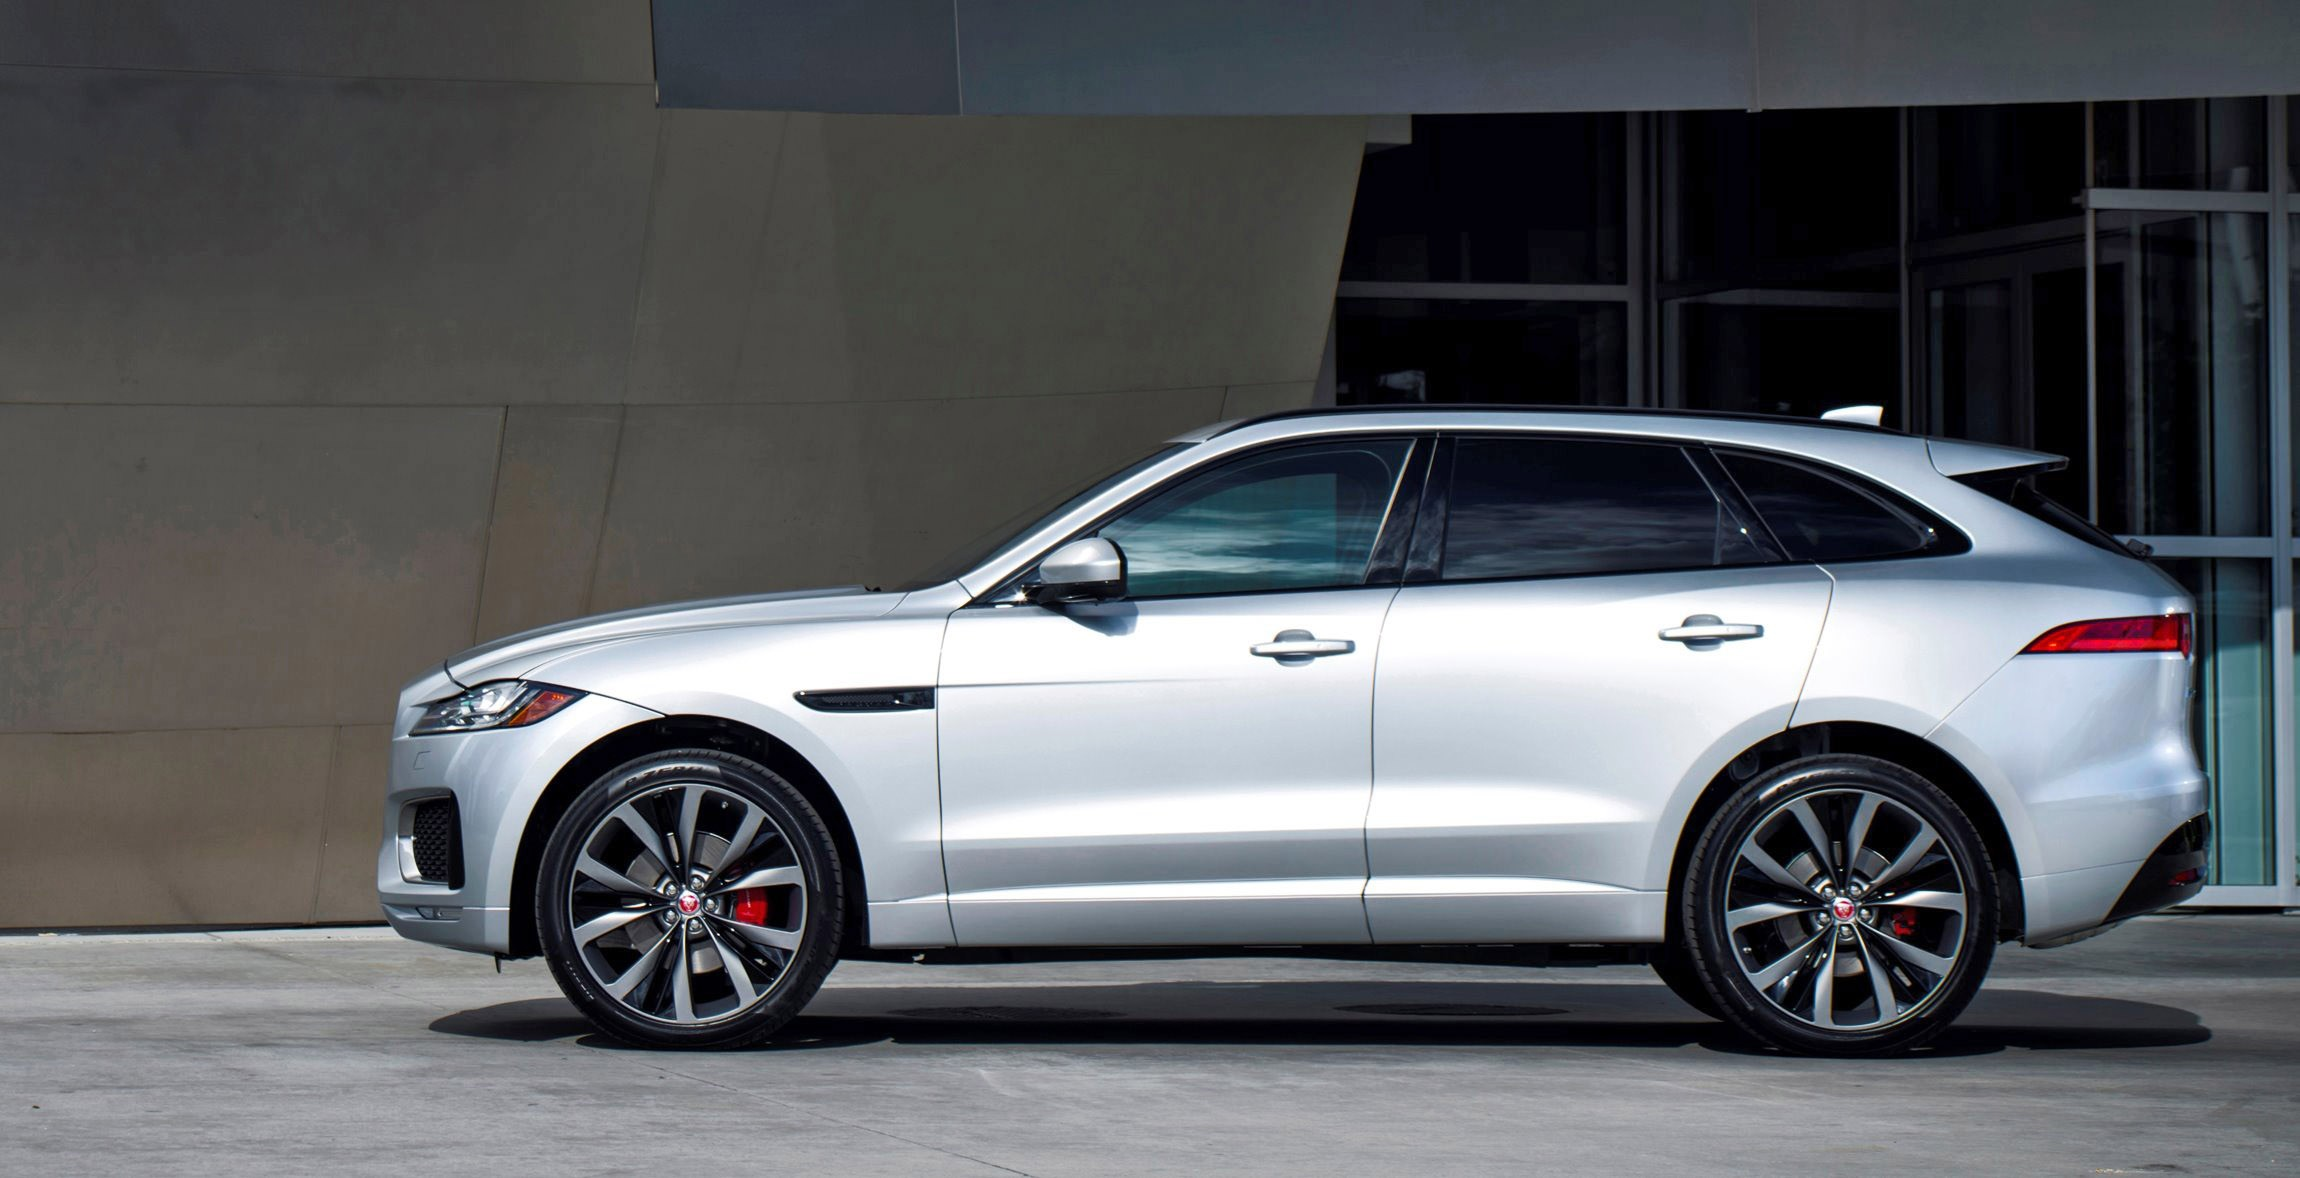 2017 jaguar f pace suv usa photos colors wheels visualizer and pricing from 42k. Black Bedroom Furniture Sets. Home Design Ideas